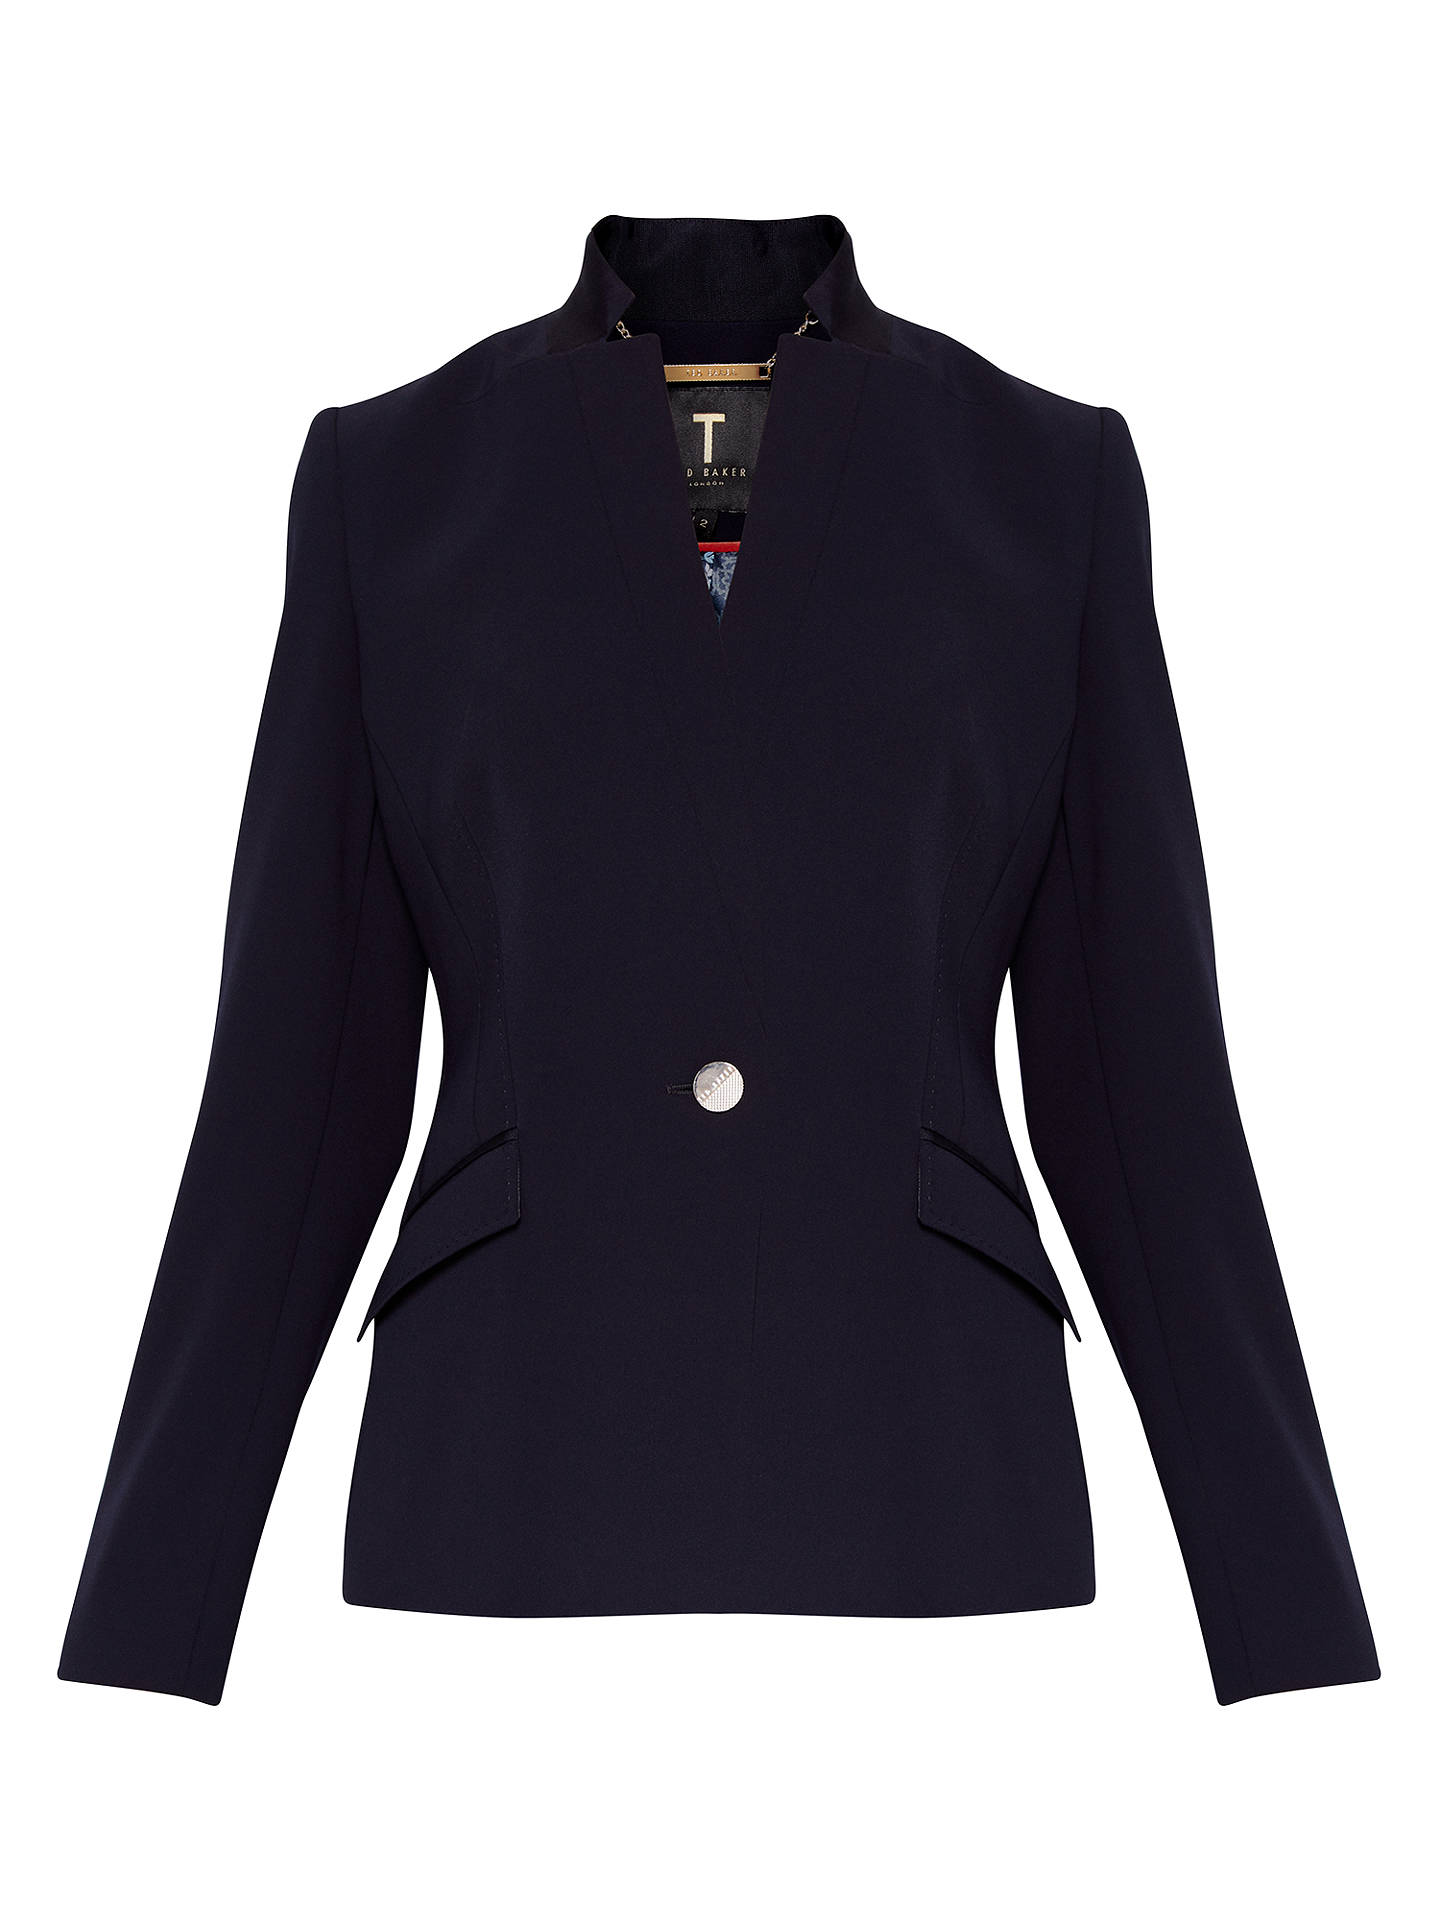 BuyTed Baker Ulmia Ottoman Suit Jacket, Navy, 0 Online at johnlewis.com